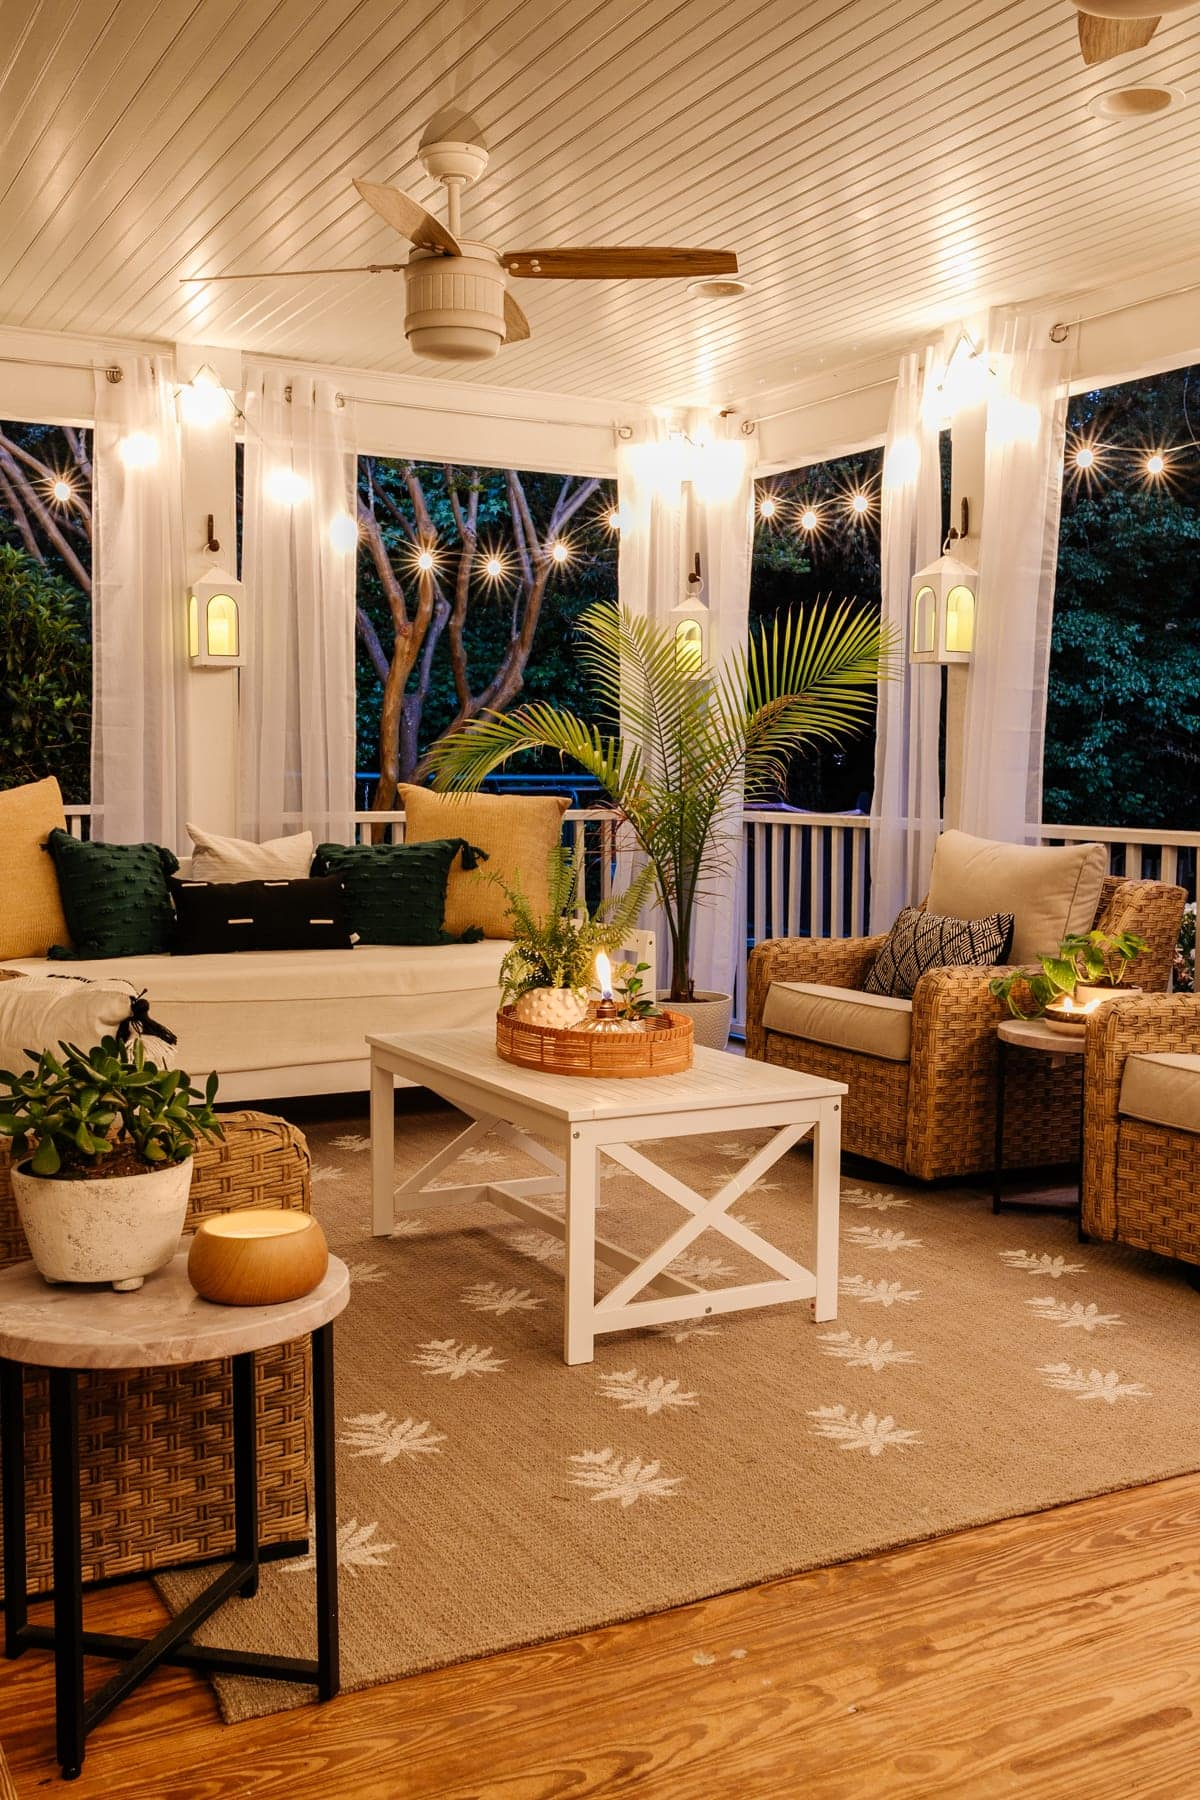 back porch at night with twinkle lights, candles, and floral block DIY outdoor rug